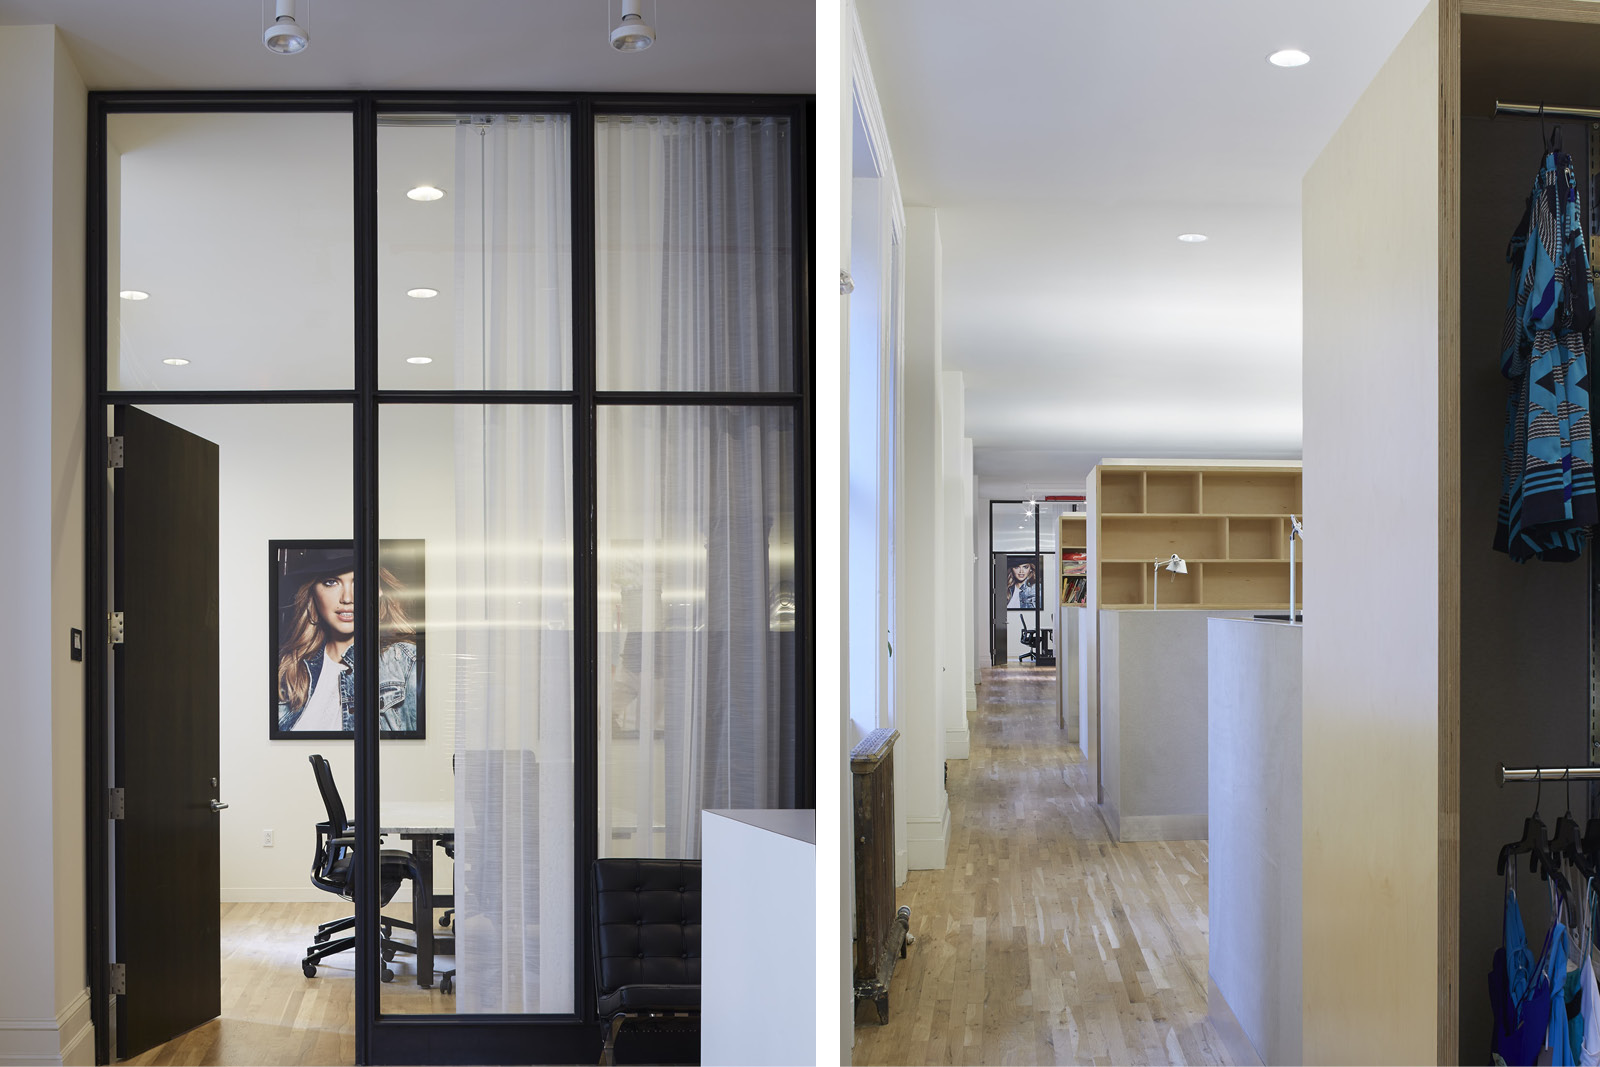 res4-resolution-4-architecture-modern-commercial-express-office-design-studio-interior-19.jpg